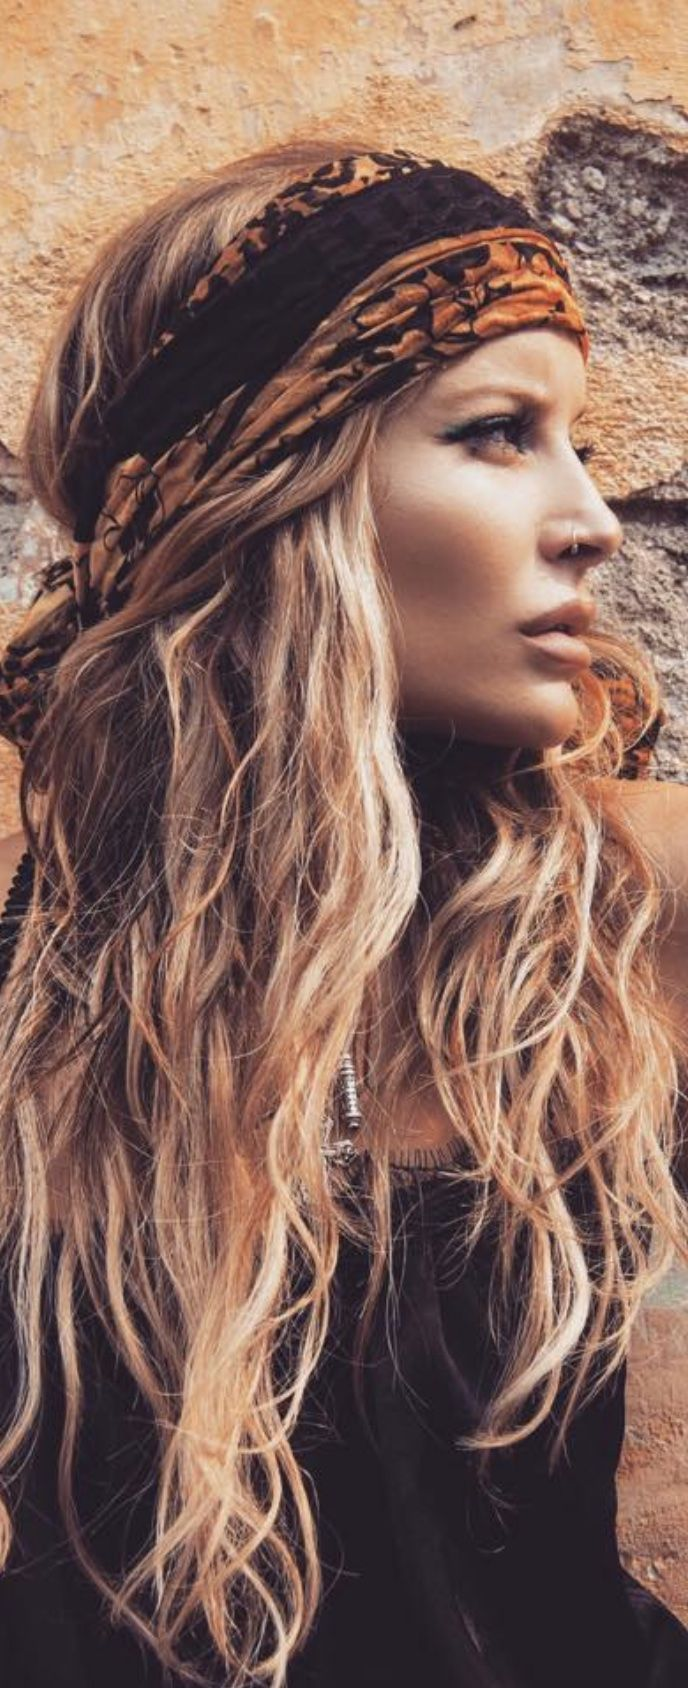 bohemian hair | boho hippie gurl in 2019 | hippie hair